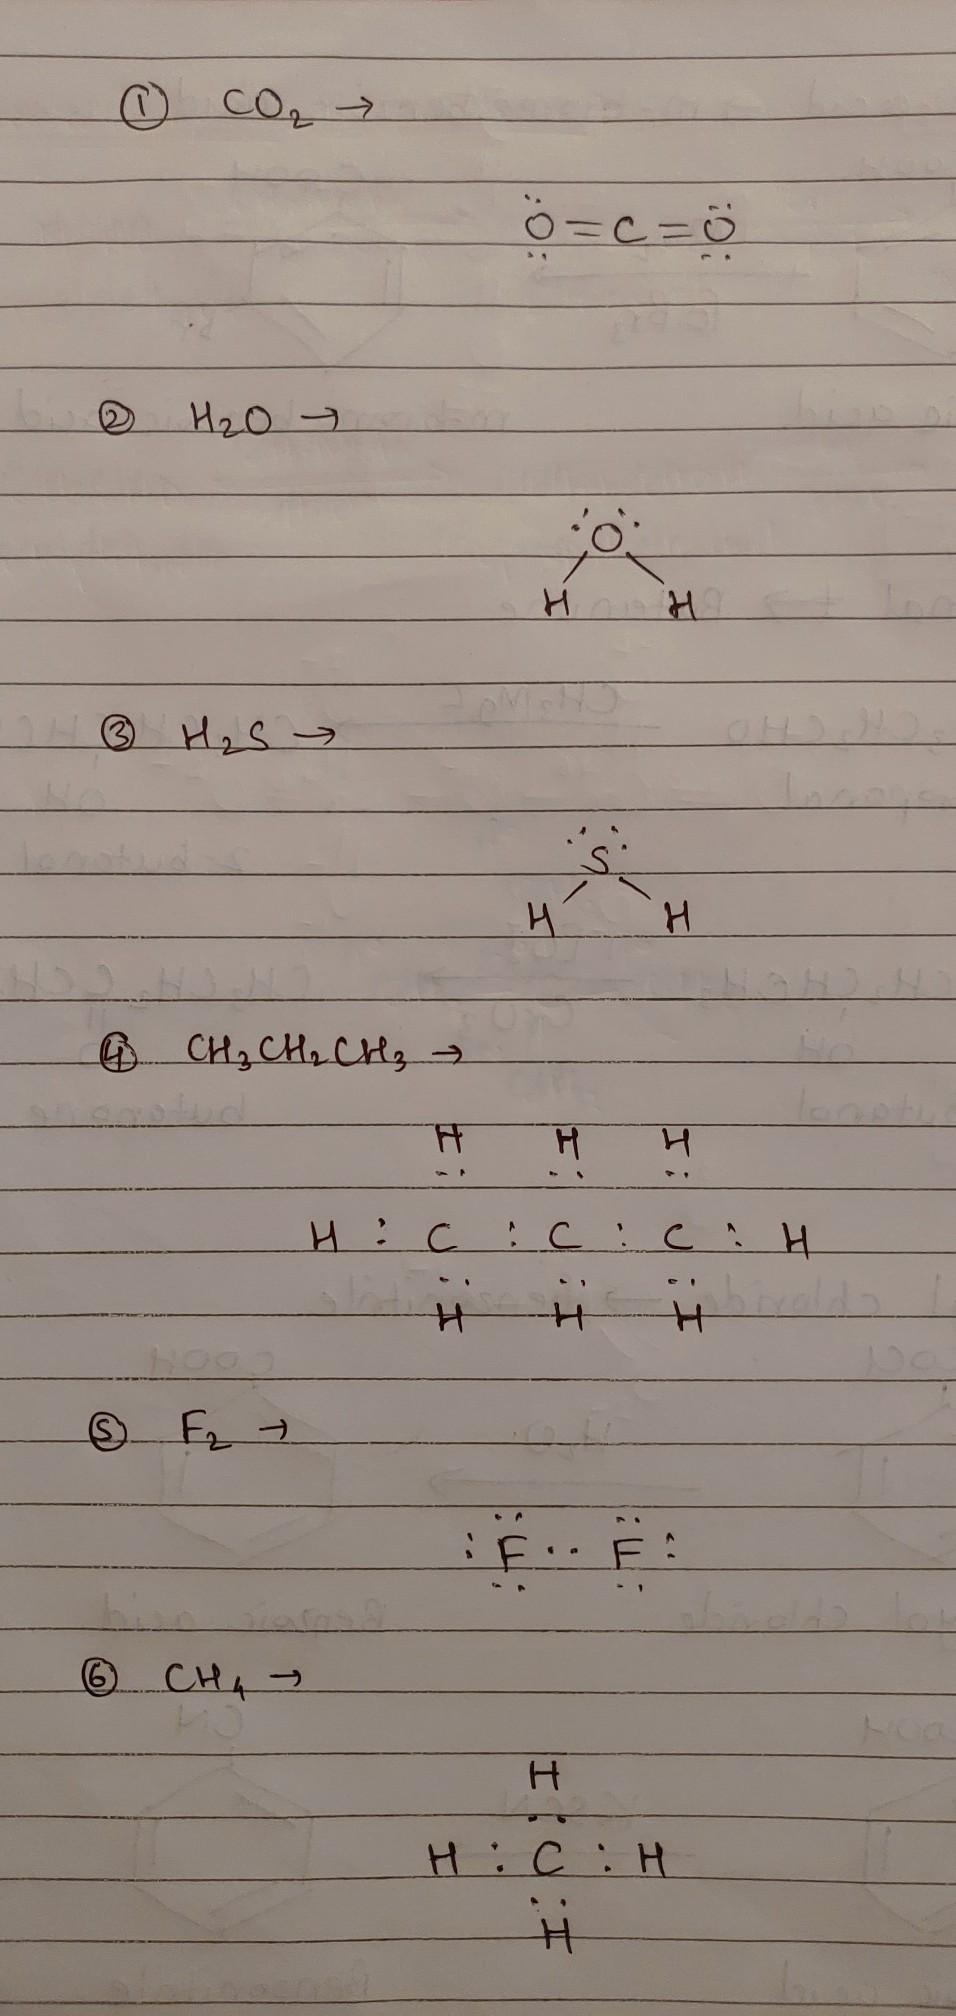 Write The Electron Dot Structure Of Co2 H2o H2s Propane F2 Ch4 Brainly In